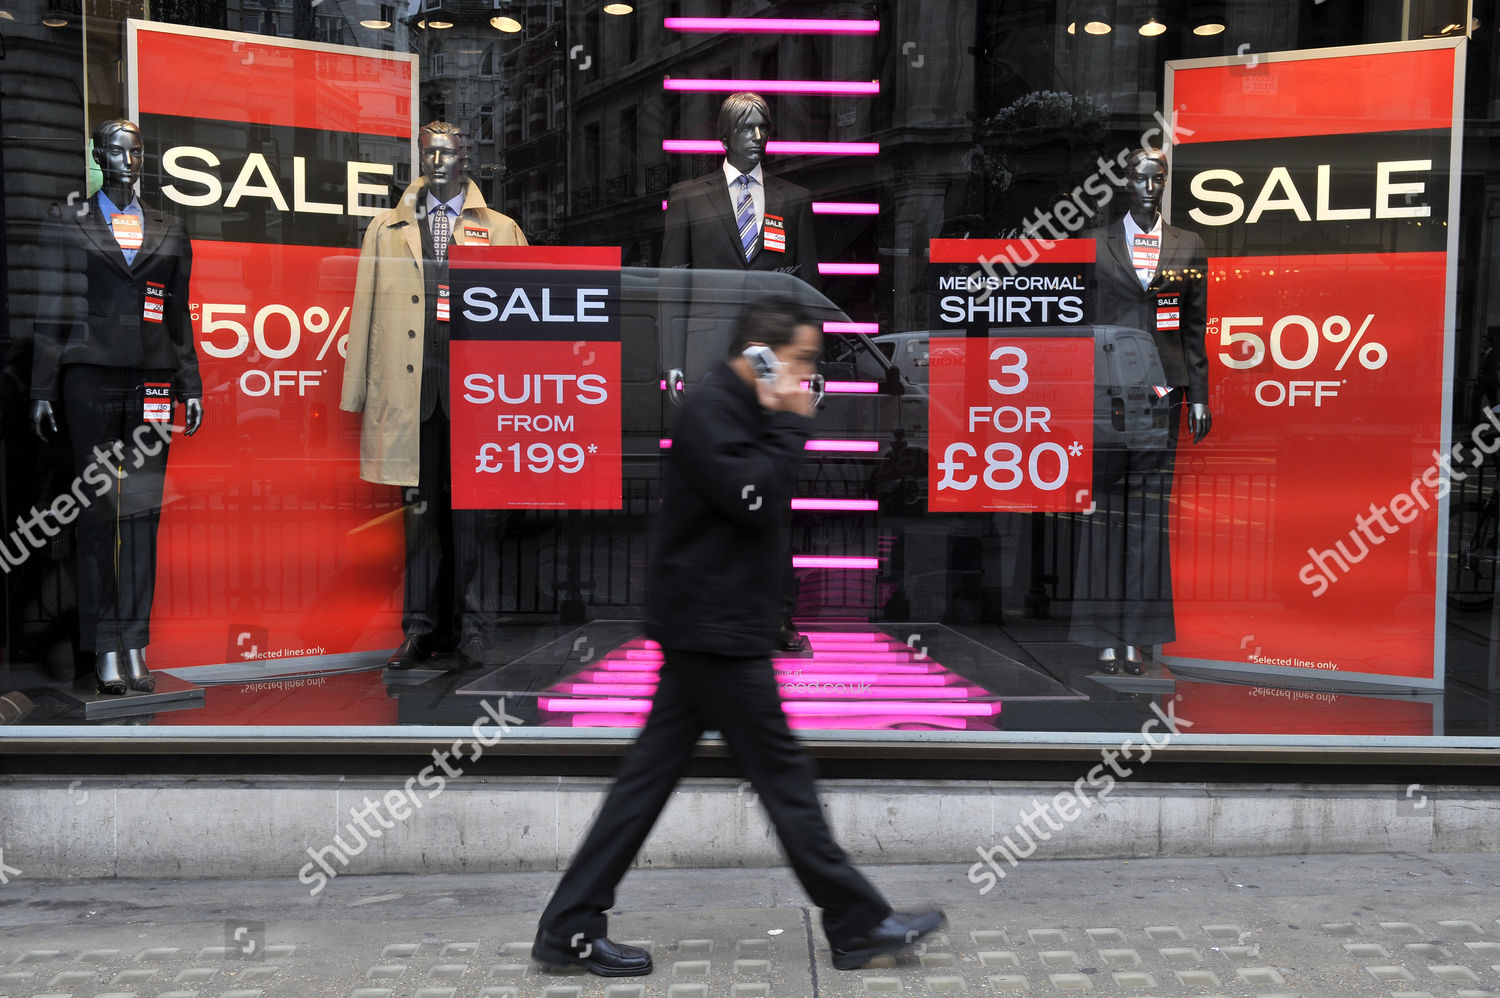 Austin Reed Sale Window Shopping Bargains Be Editorial Stock Photo Stock Image Shutterstock